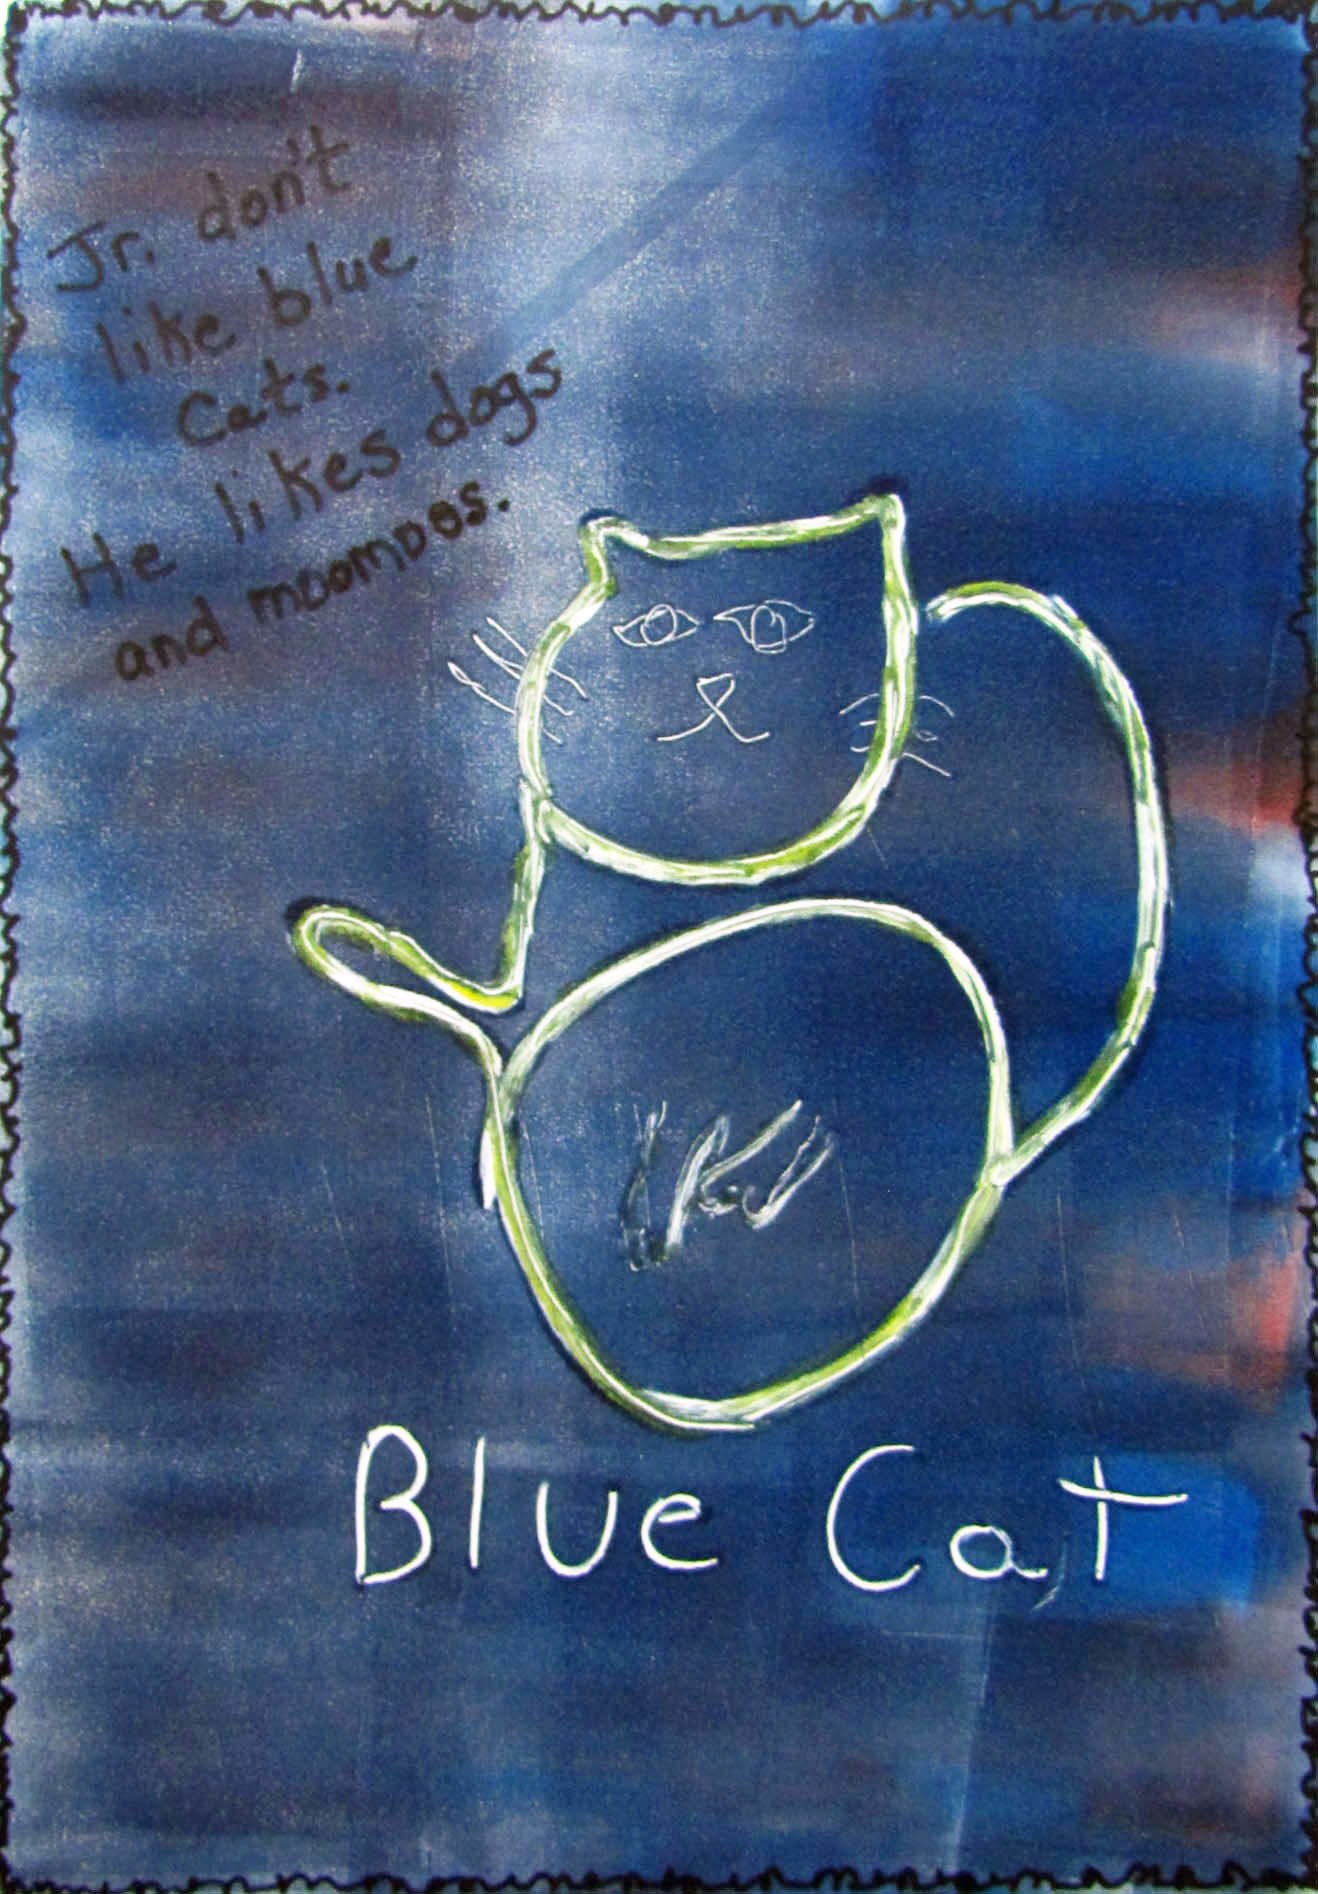 Blue Cat- DWE Williams.jpg